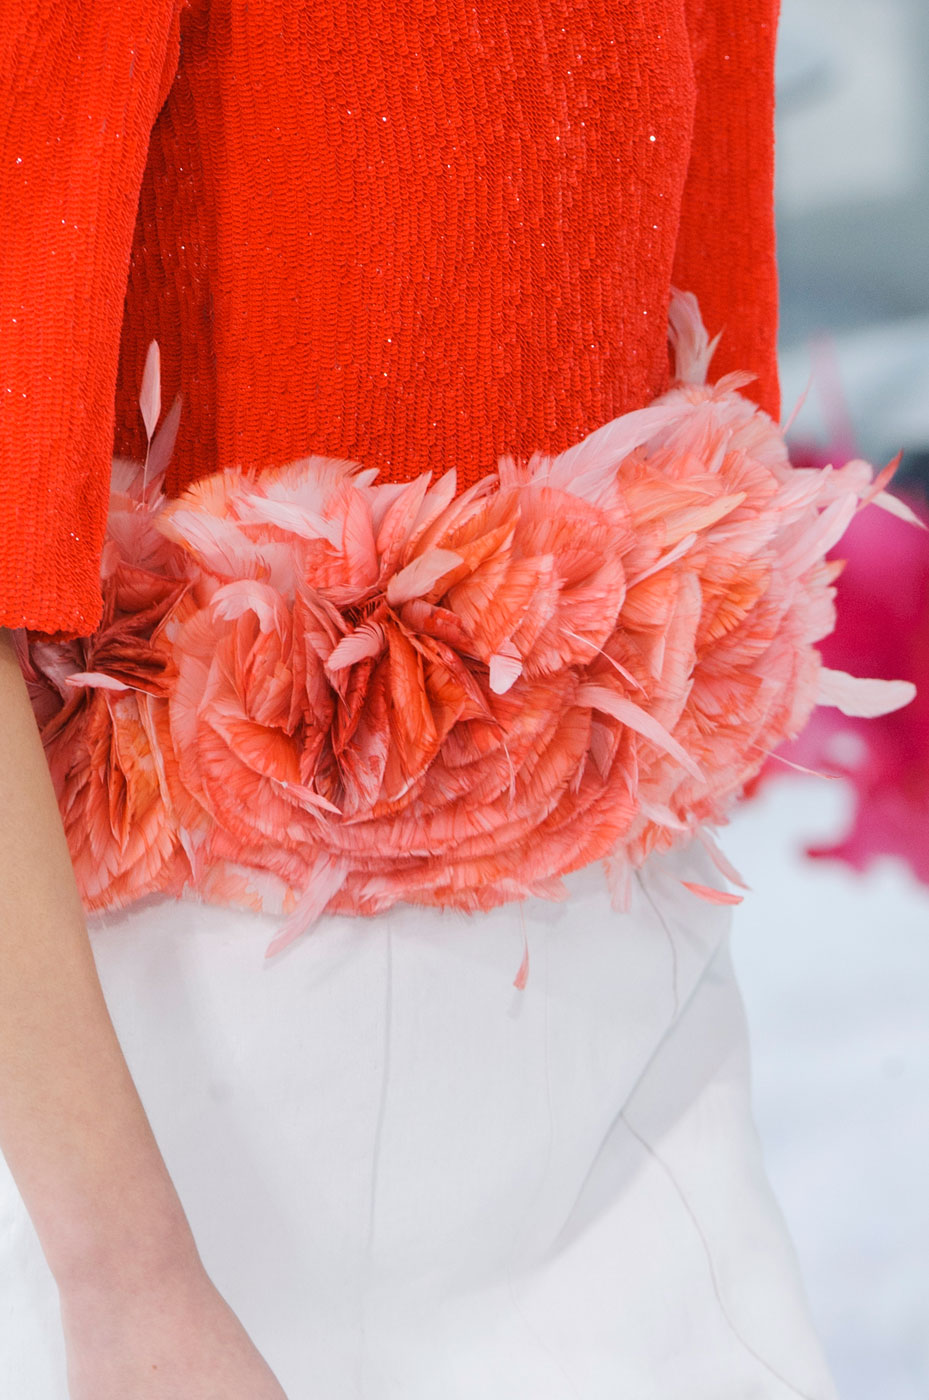 Chanel-fashion-runway-show-close-ups-haute-couture-paris-spring-summer-2015-the-impression-101